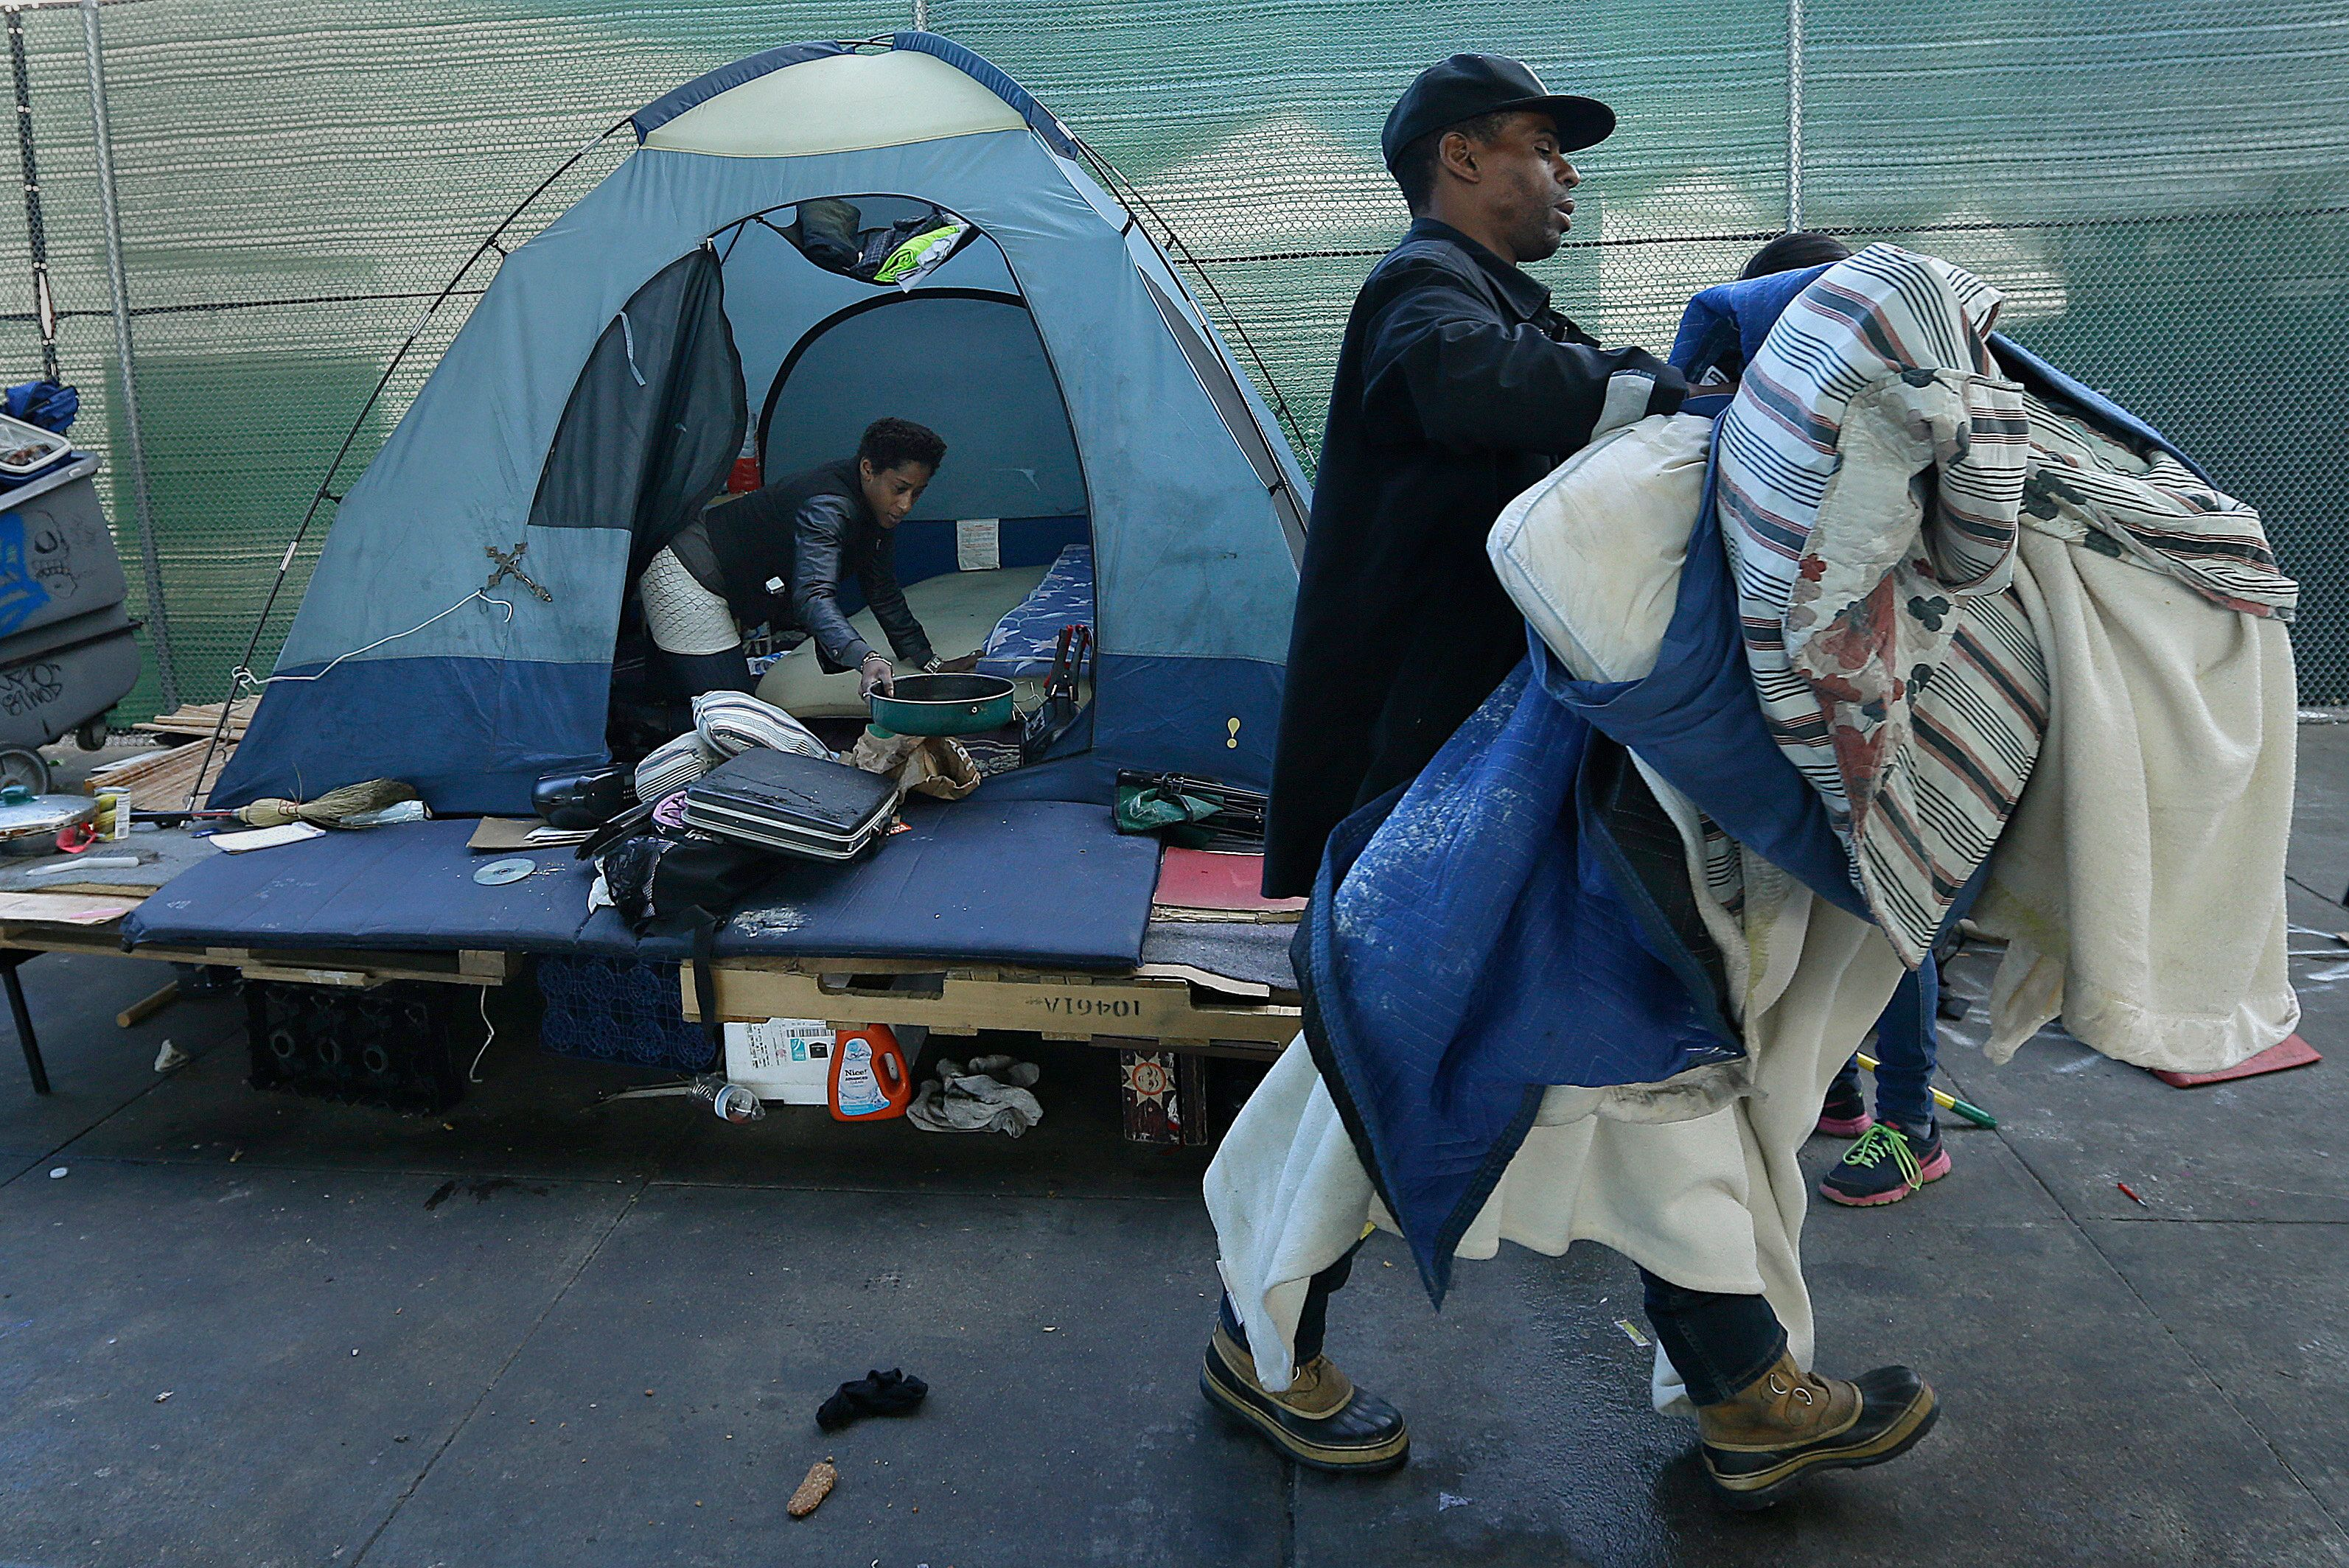 San Francisco to Tax Big Businesses to Raise Money to Help Homeless